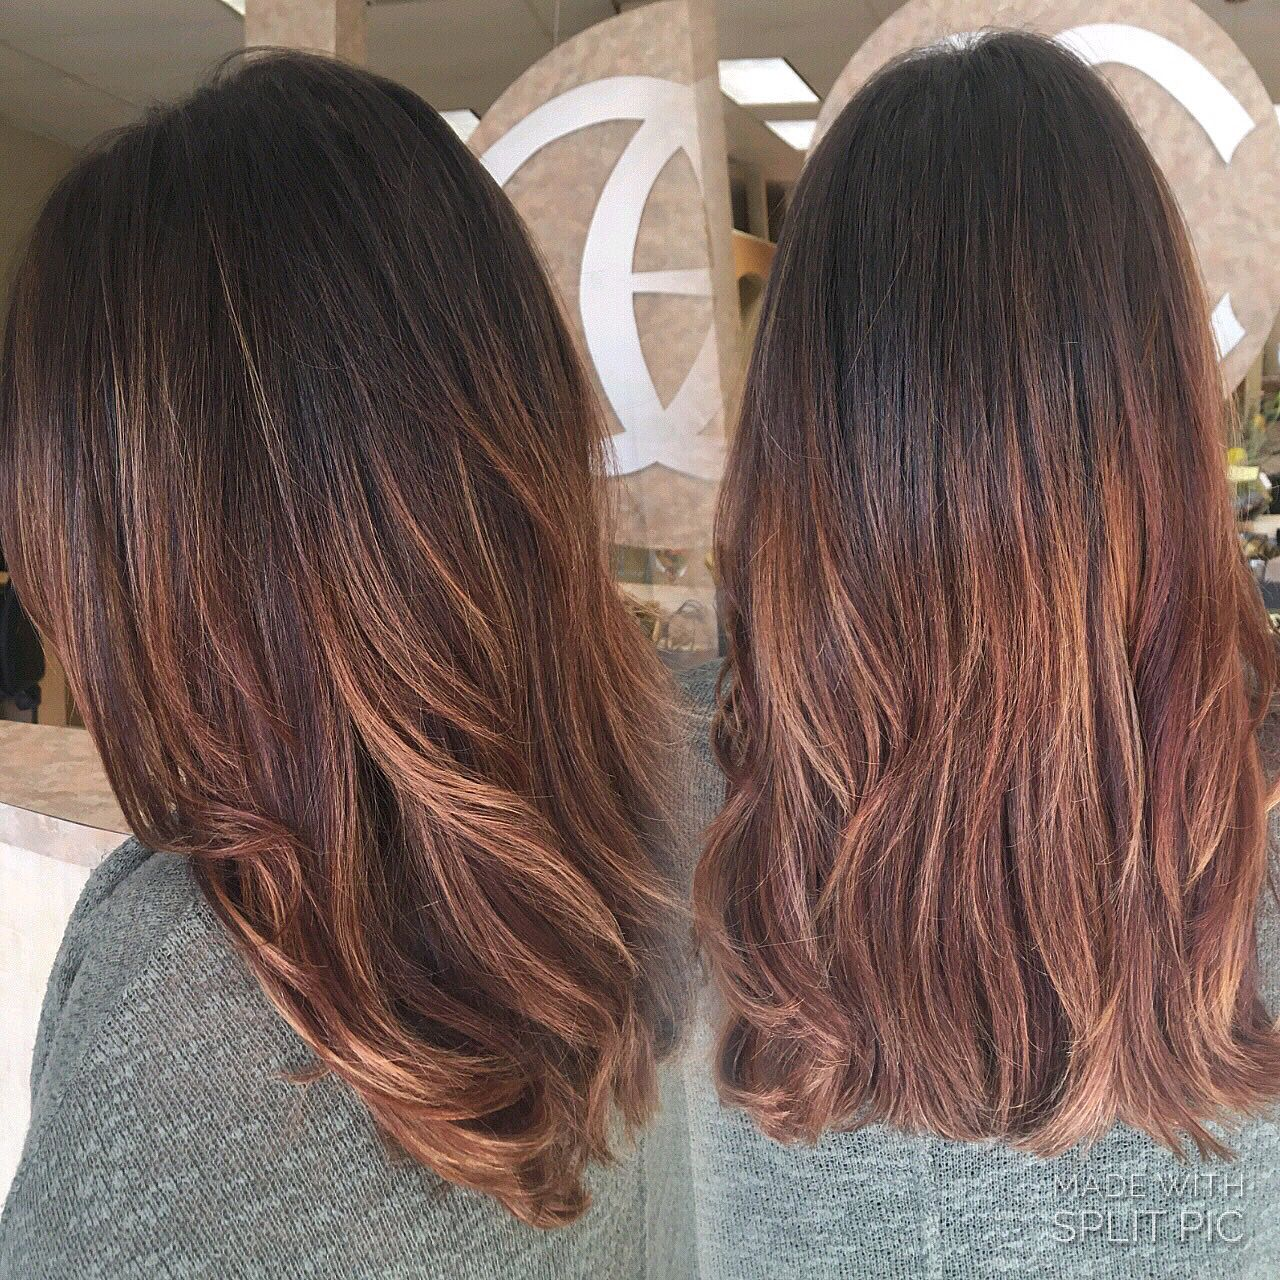 Natural Highlights Brown Dark Brown Hair Hand Painted Balayage Highlights Red Brown Copper Tones By Ig Hairbynickyz Hair Copper Brown Hair Hair Styles